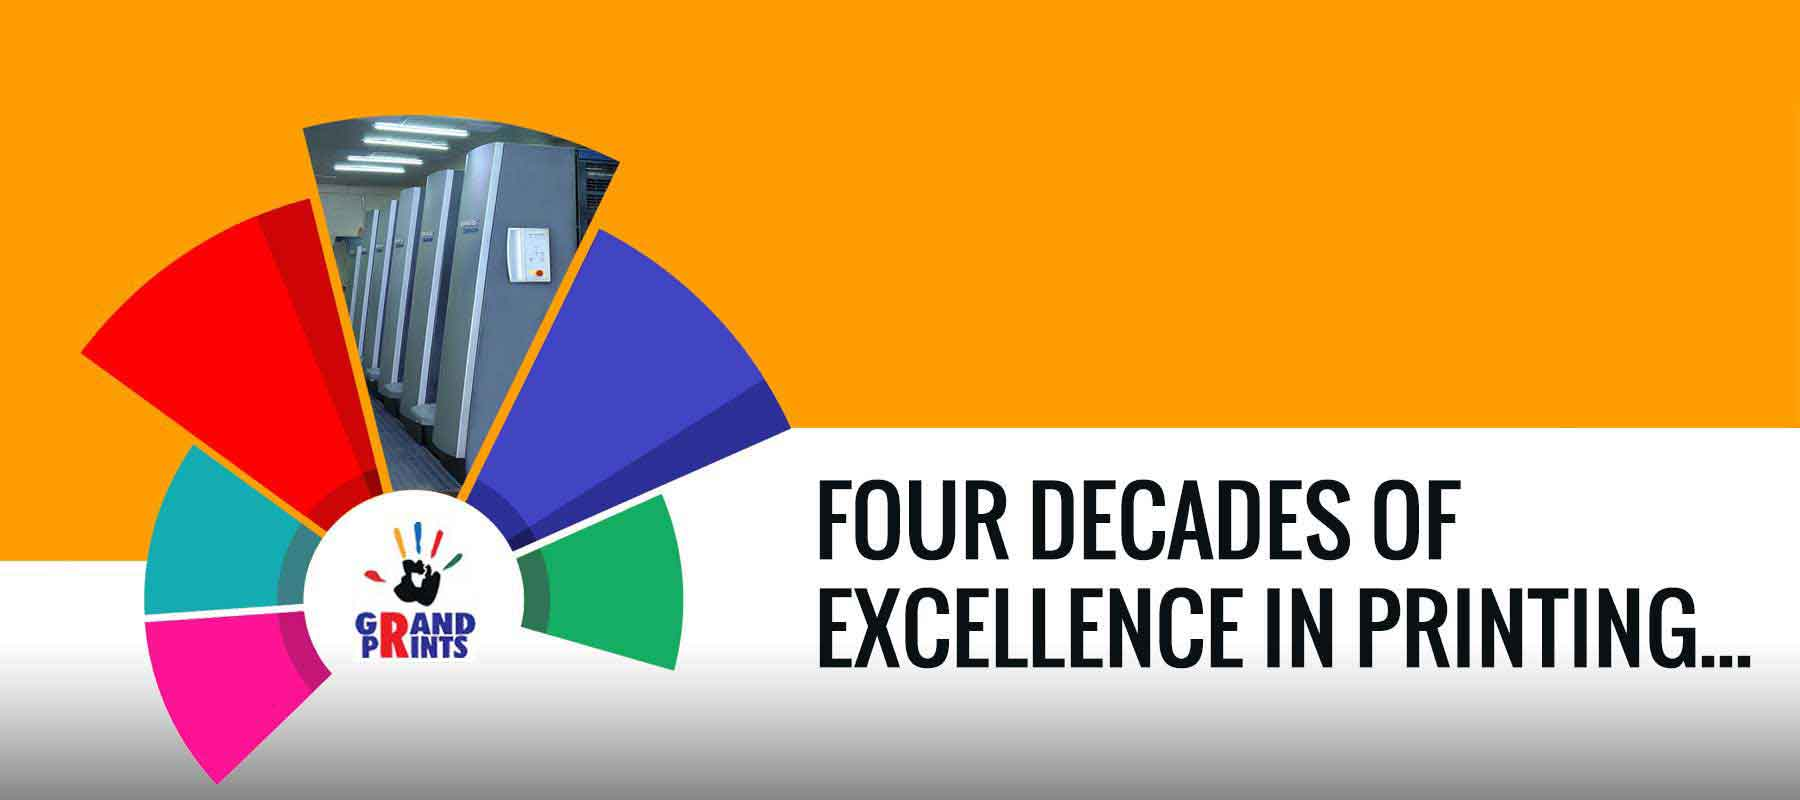 Four Decades of Excellence in Printing